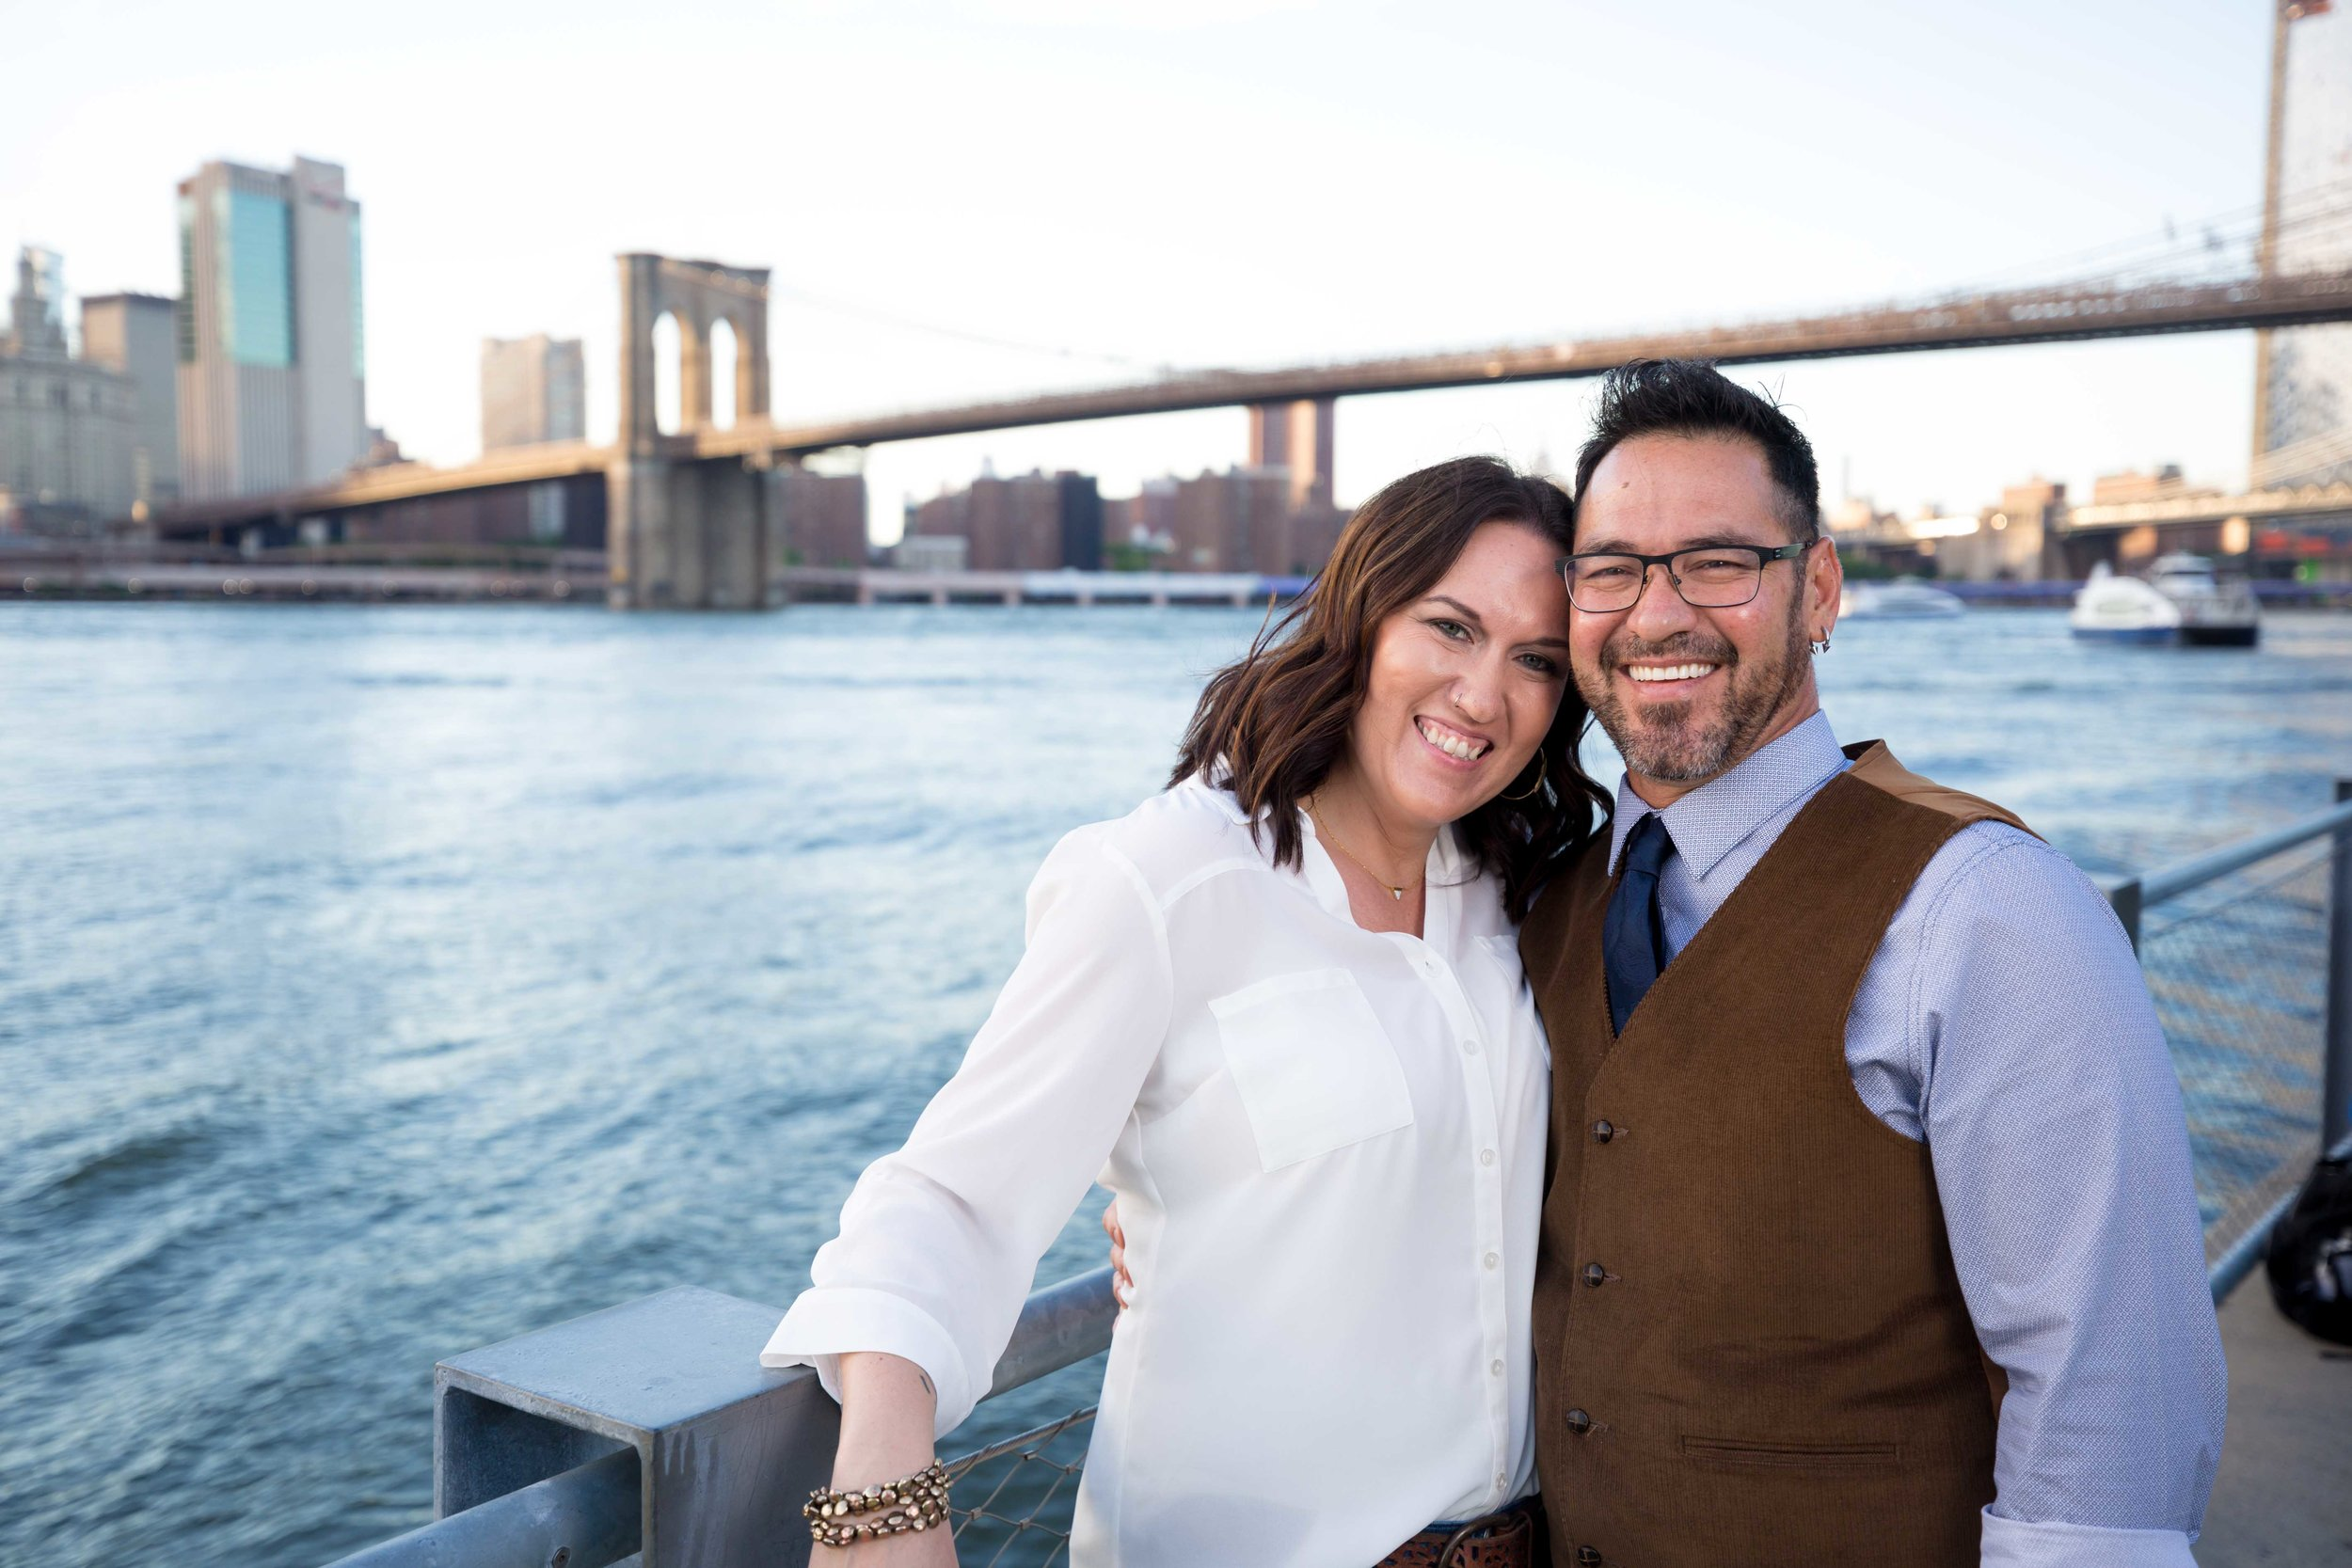 DUMBO Brooklyn Bridge Heights Promenade Anniversary Photo Shoot Session NYC Wedding Photographer-3.jpg